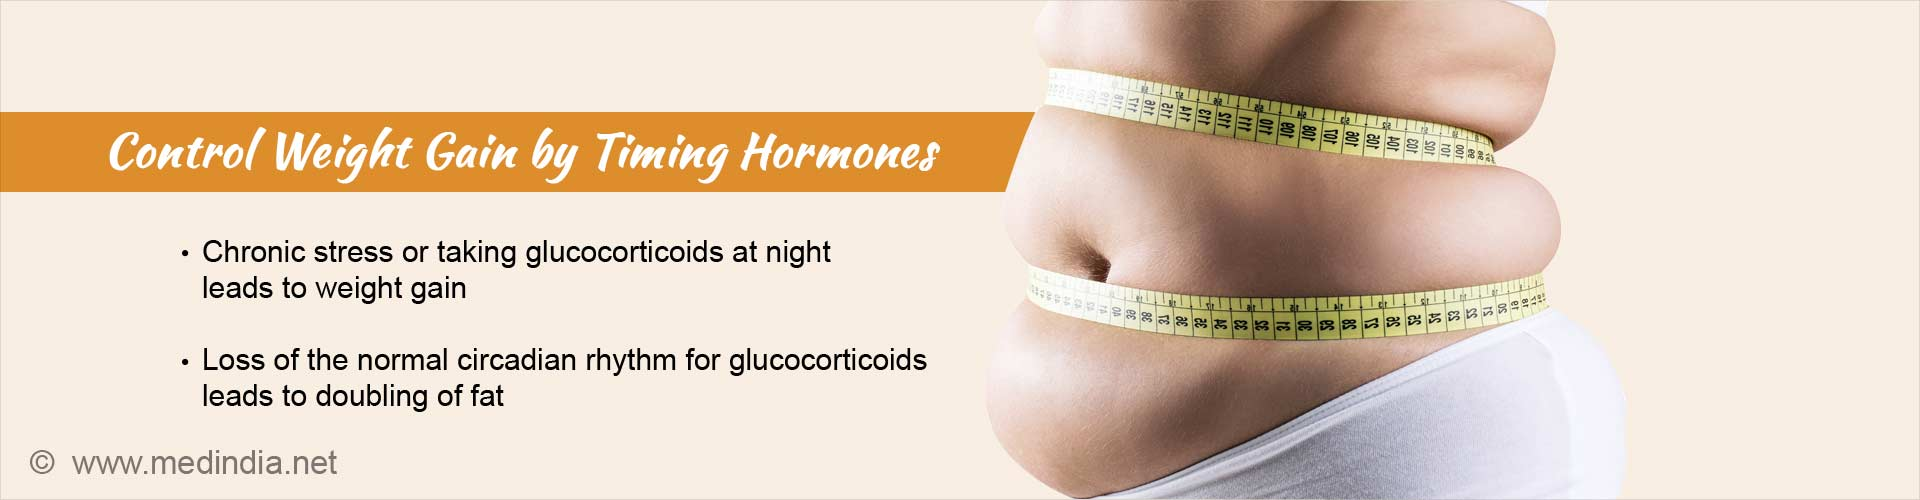 control weight gain by timing hormones - chronic stress or taking glucocorticoids at night leads to weight gain - loss of normal circadian rhythm for glucocorticoids leads to doubling of fat